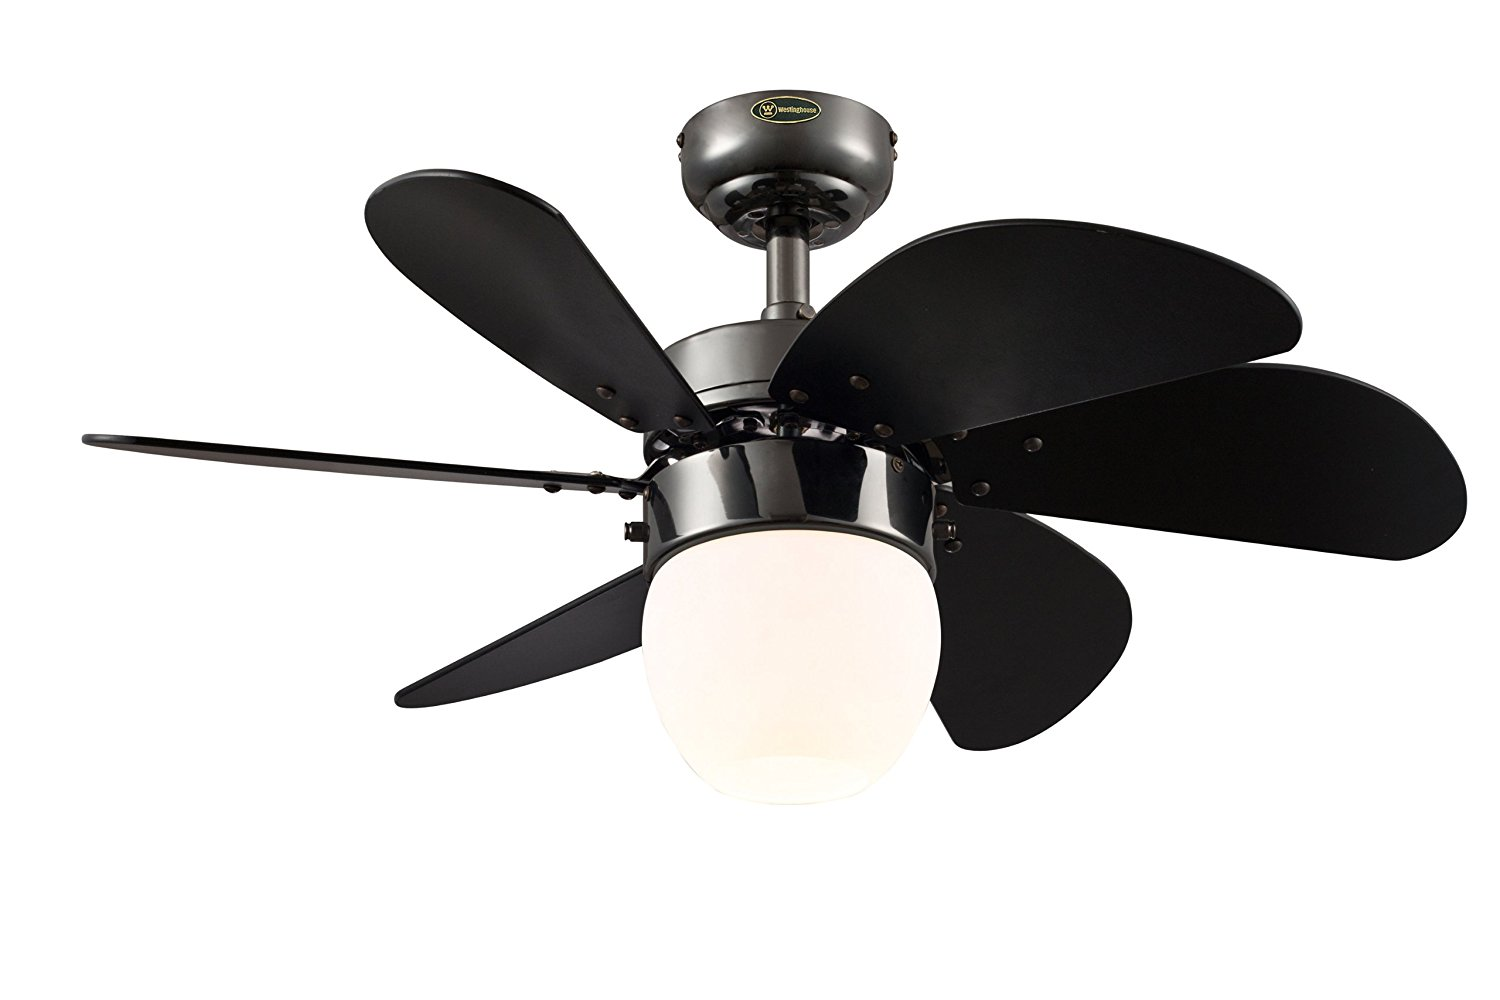 Westinghouse 7226100 Turbo Swirl CFL Single-Light 30-Inch Six-Blade Indoor Ceiling Fan, Gun Metal with Opal Frosted Glass